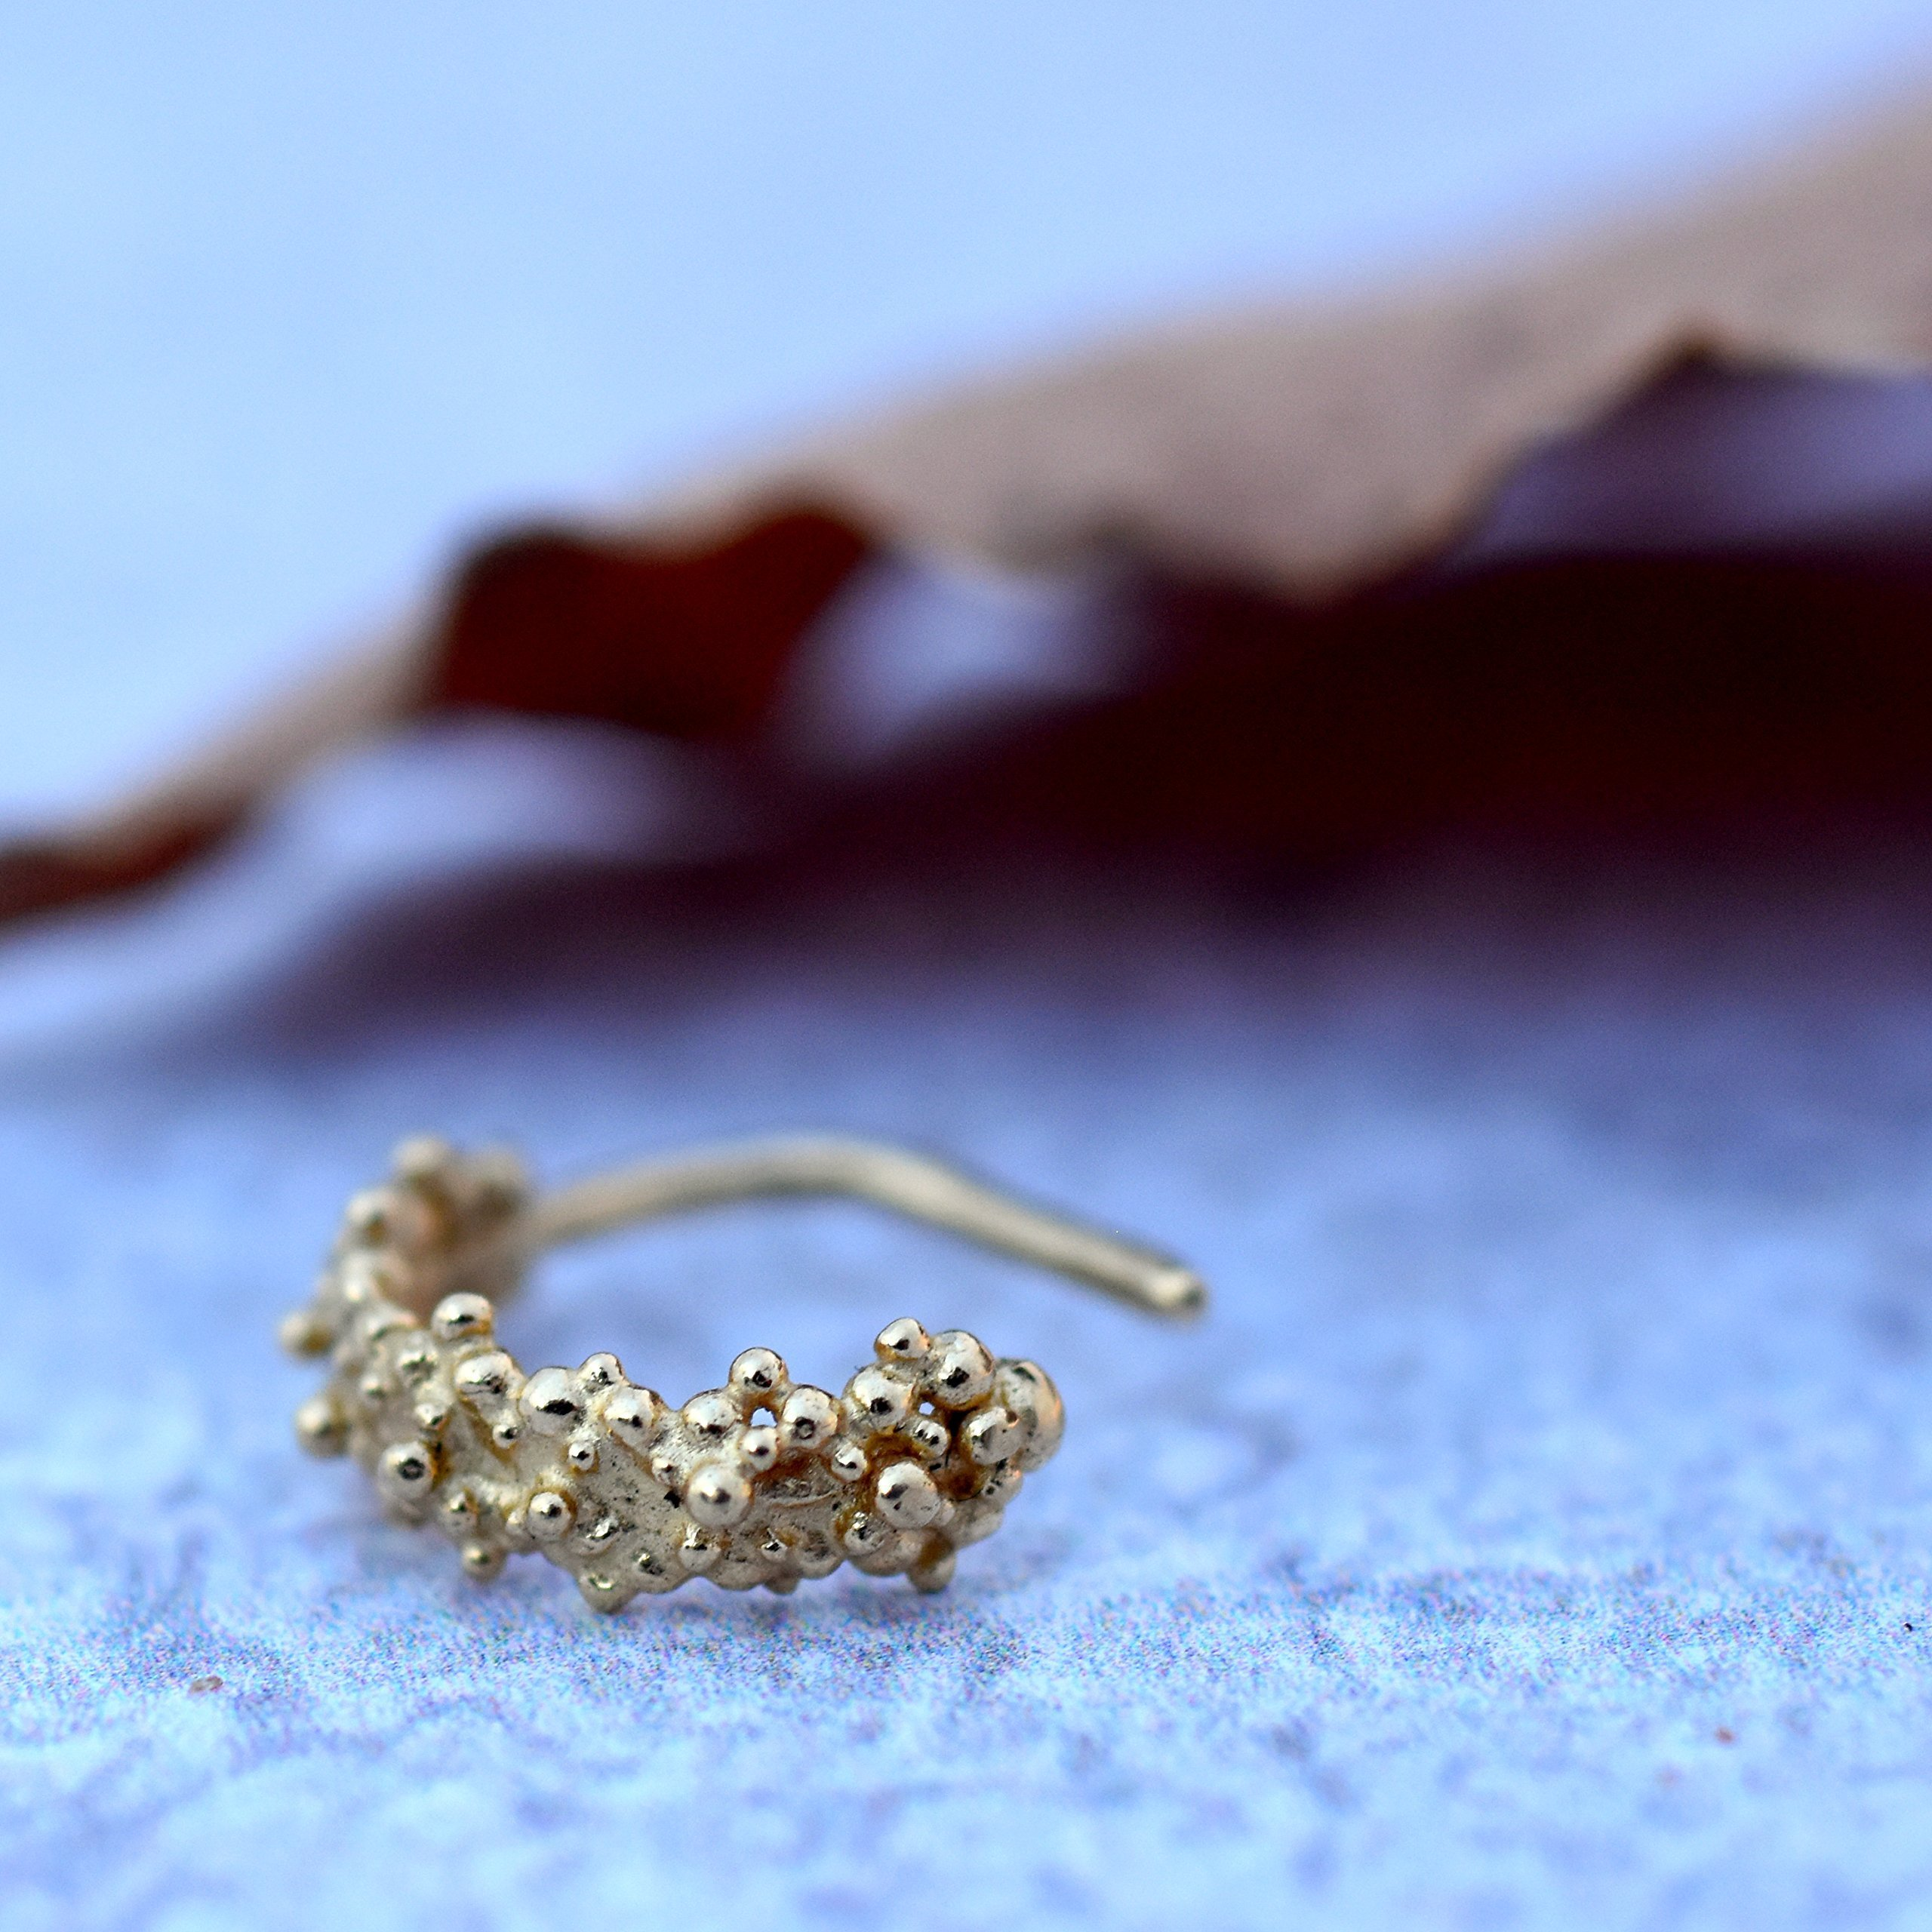 Gold Nose Ring, 14K Solid Yellow Gold Tribal Nose Hoop, Indian Style Piercing, Handmade Jewelry, 20g